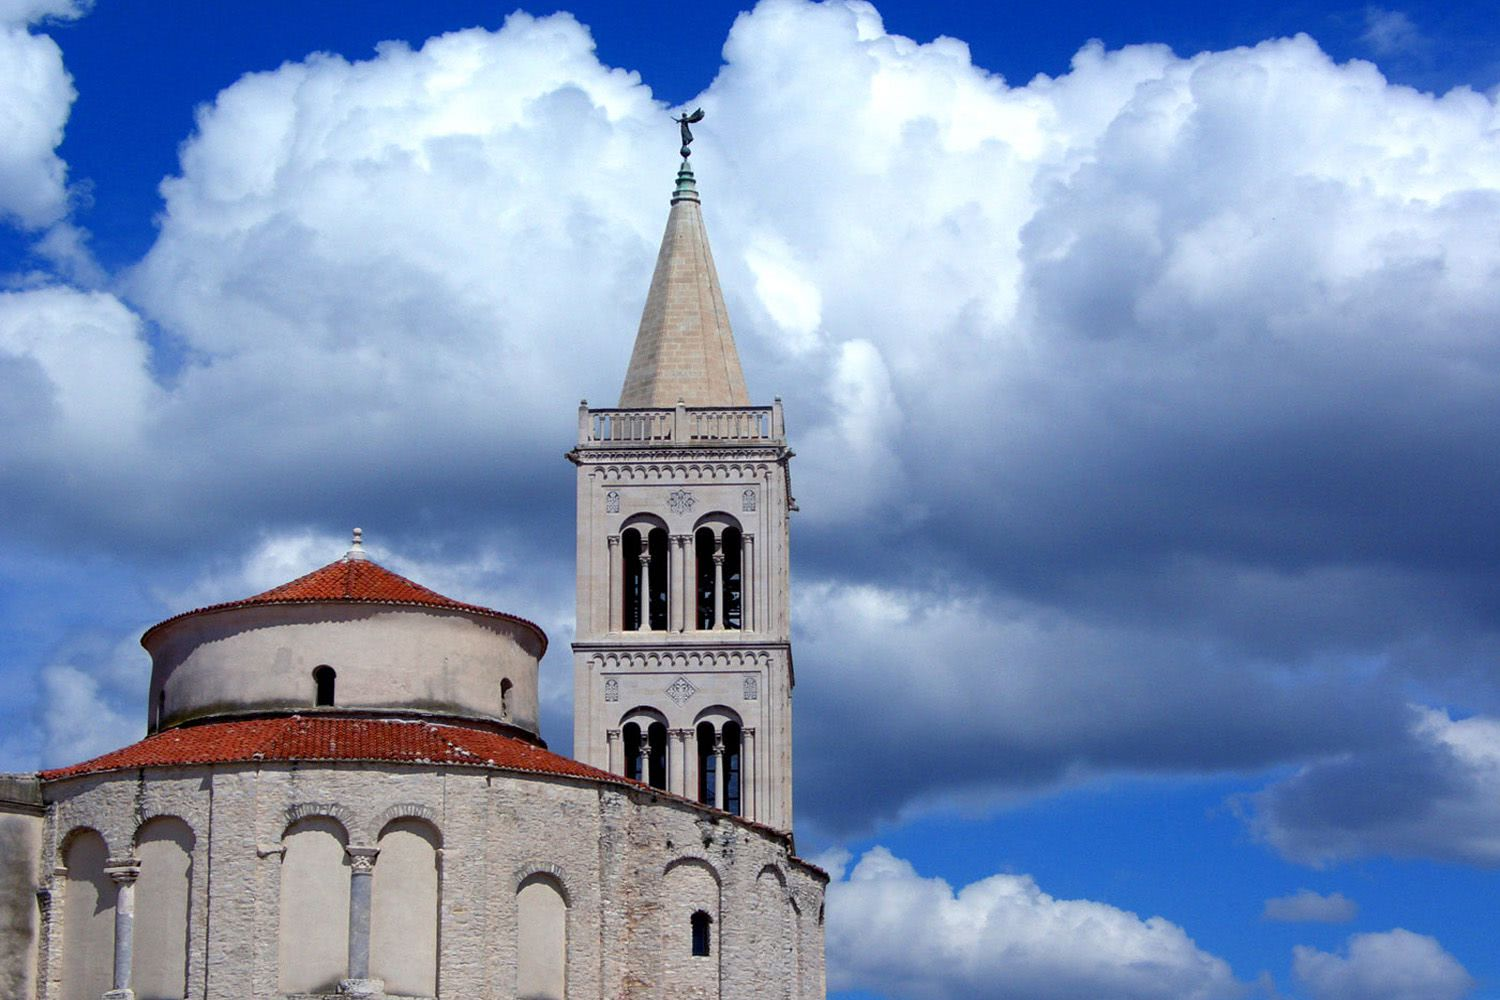 St Donatus church in Zadar